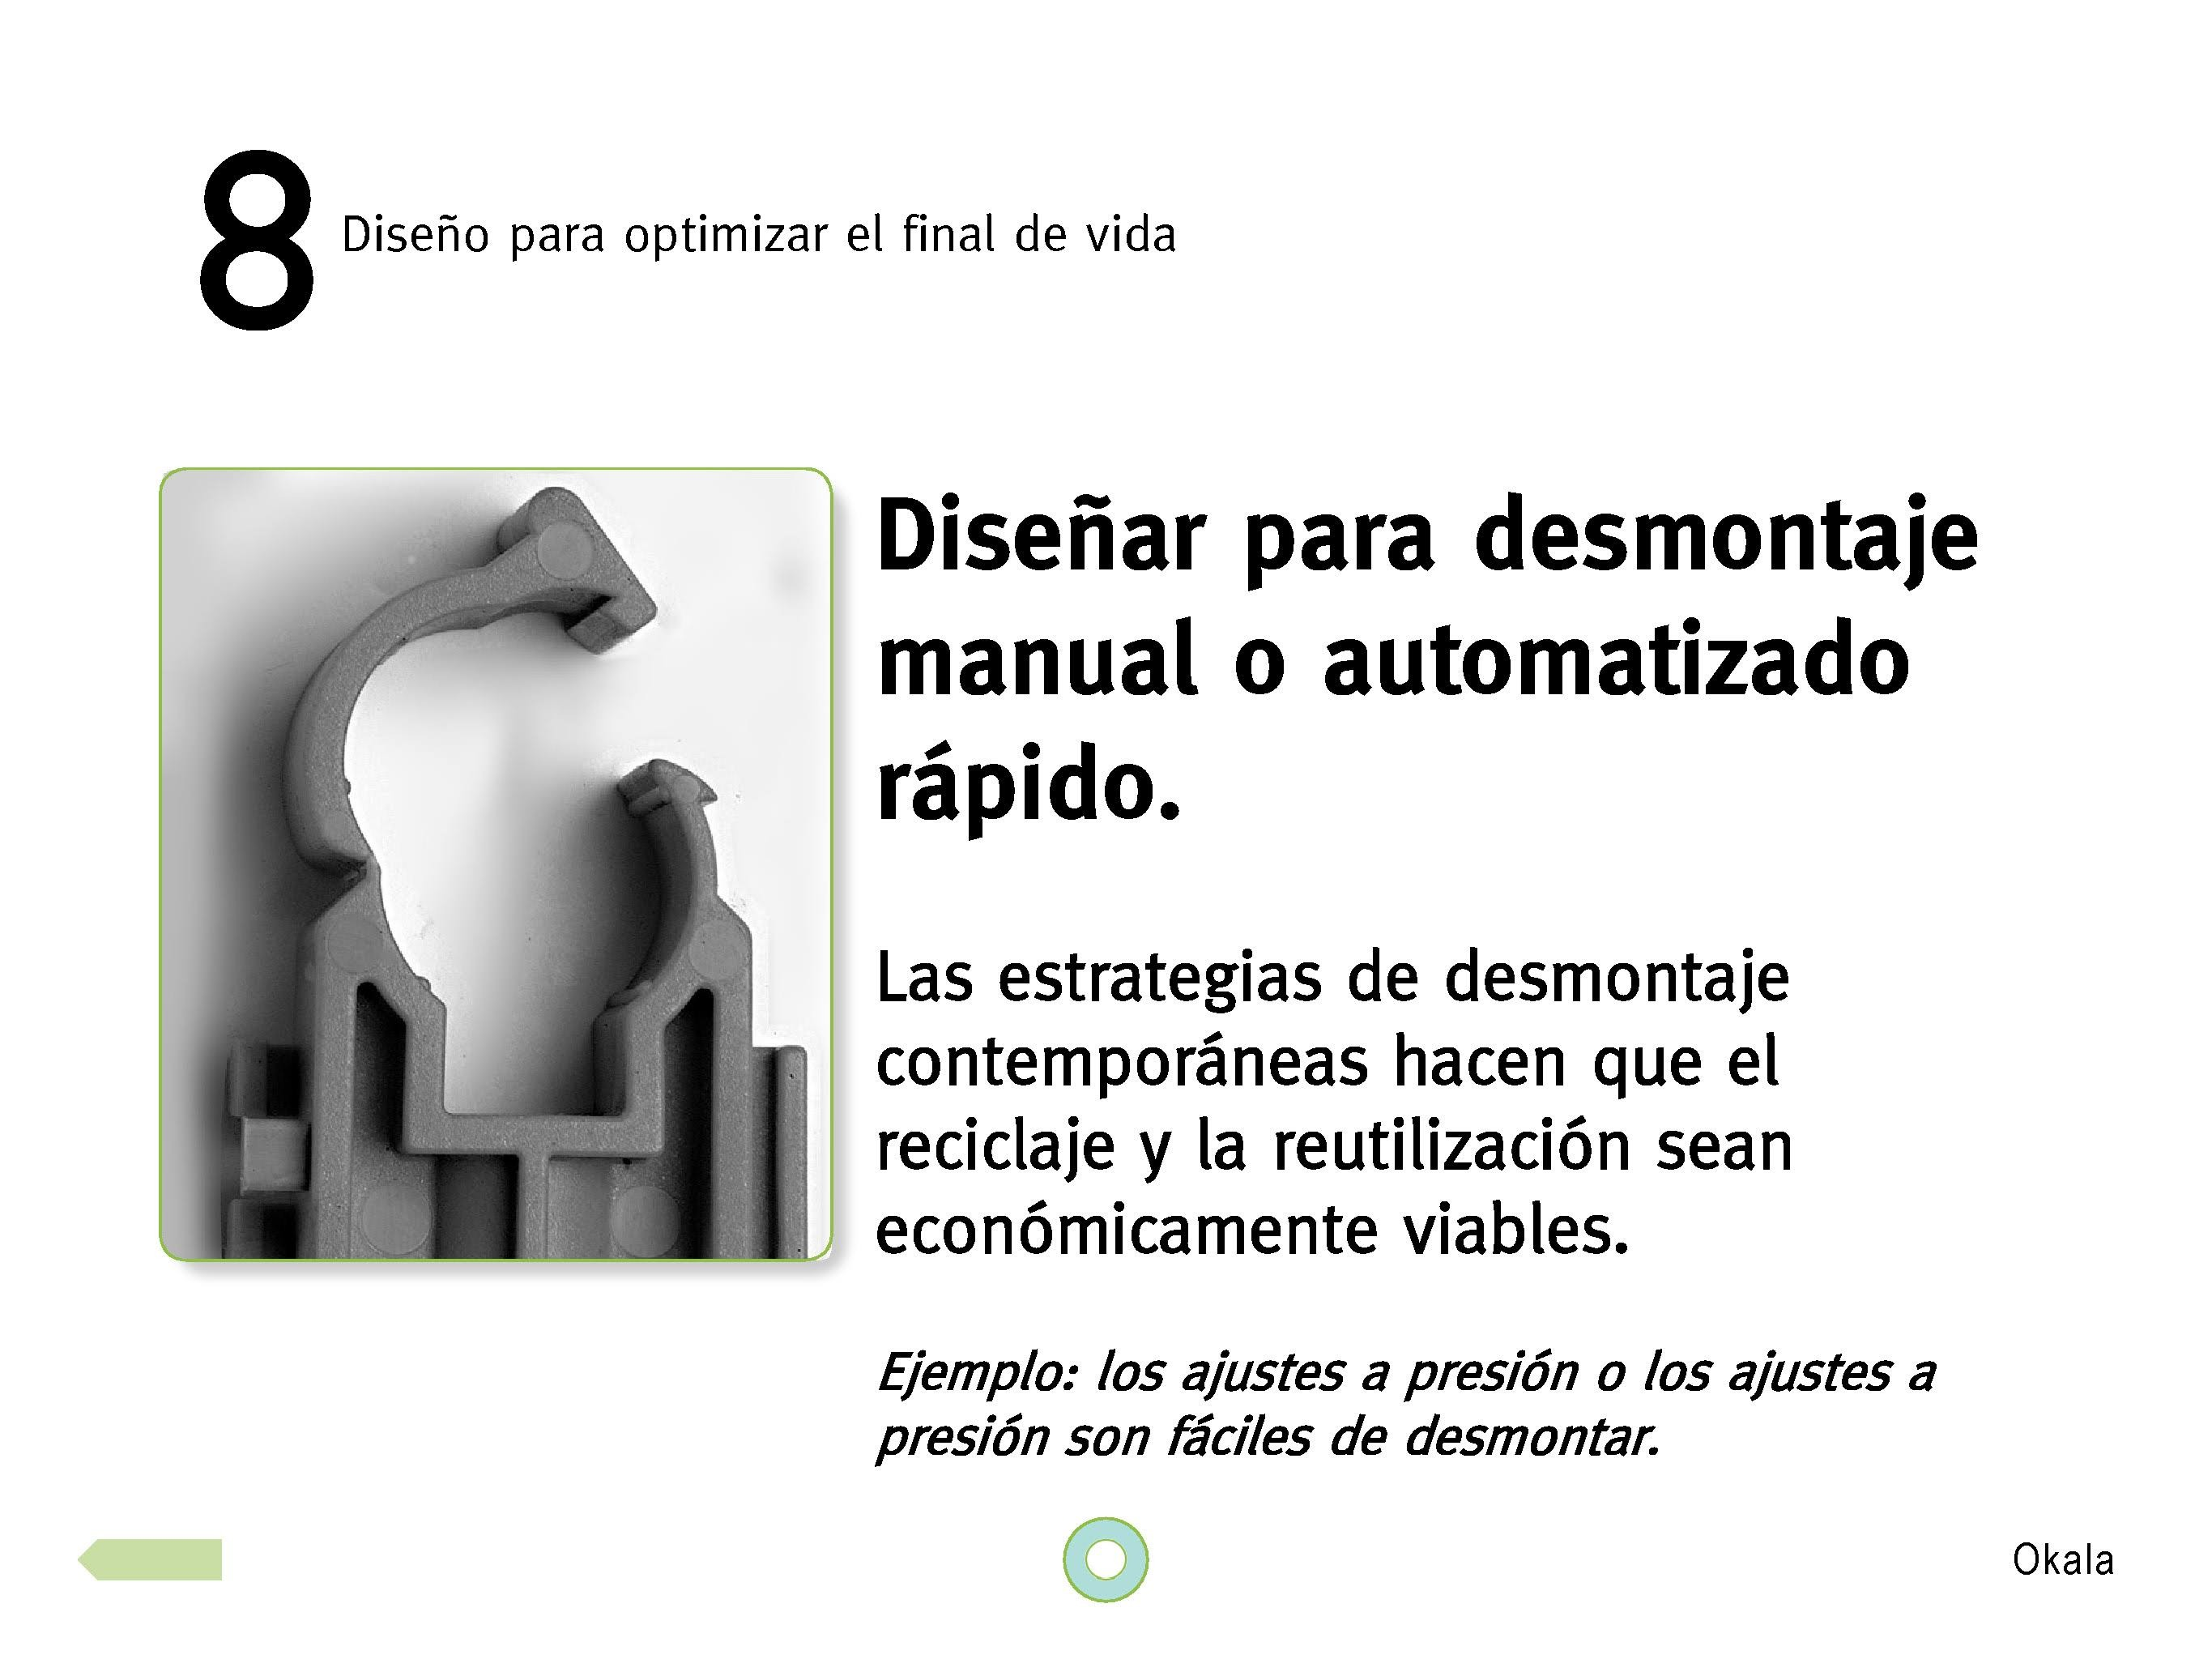 okala-ecodesign-strategy-guide-2012-spanish.new_page_42-1